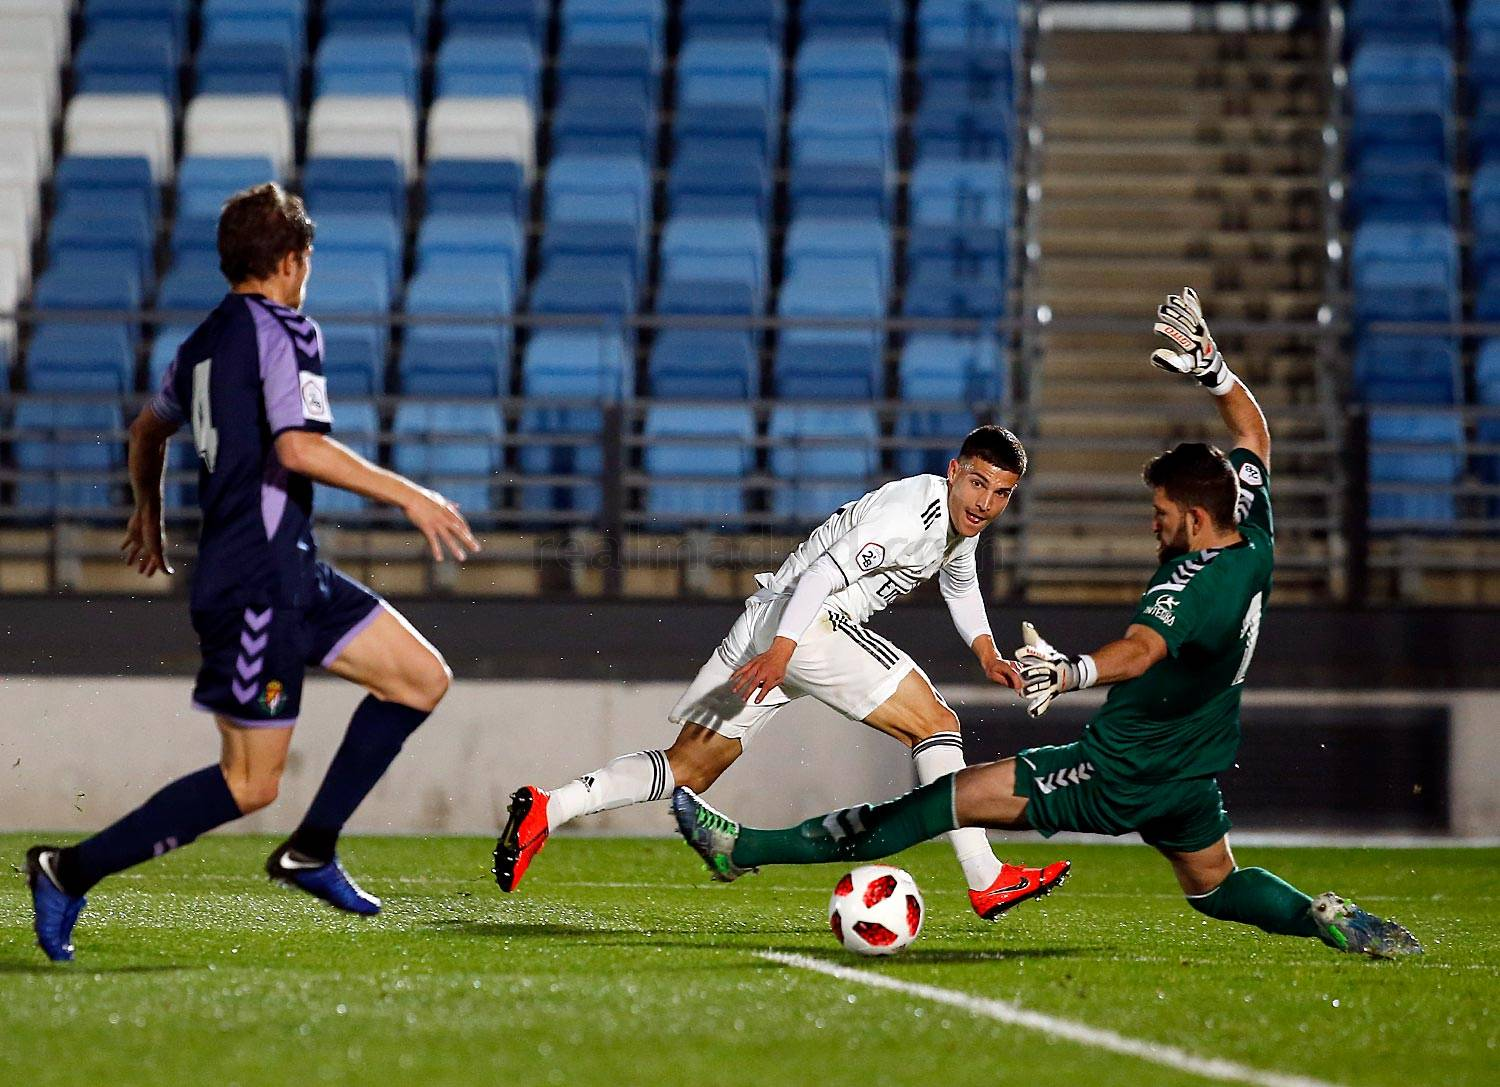 Real Madrid - Real Madrid Castilla - Valladolid B - 23-02-2019